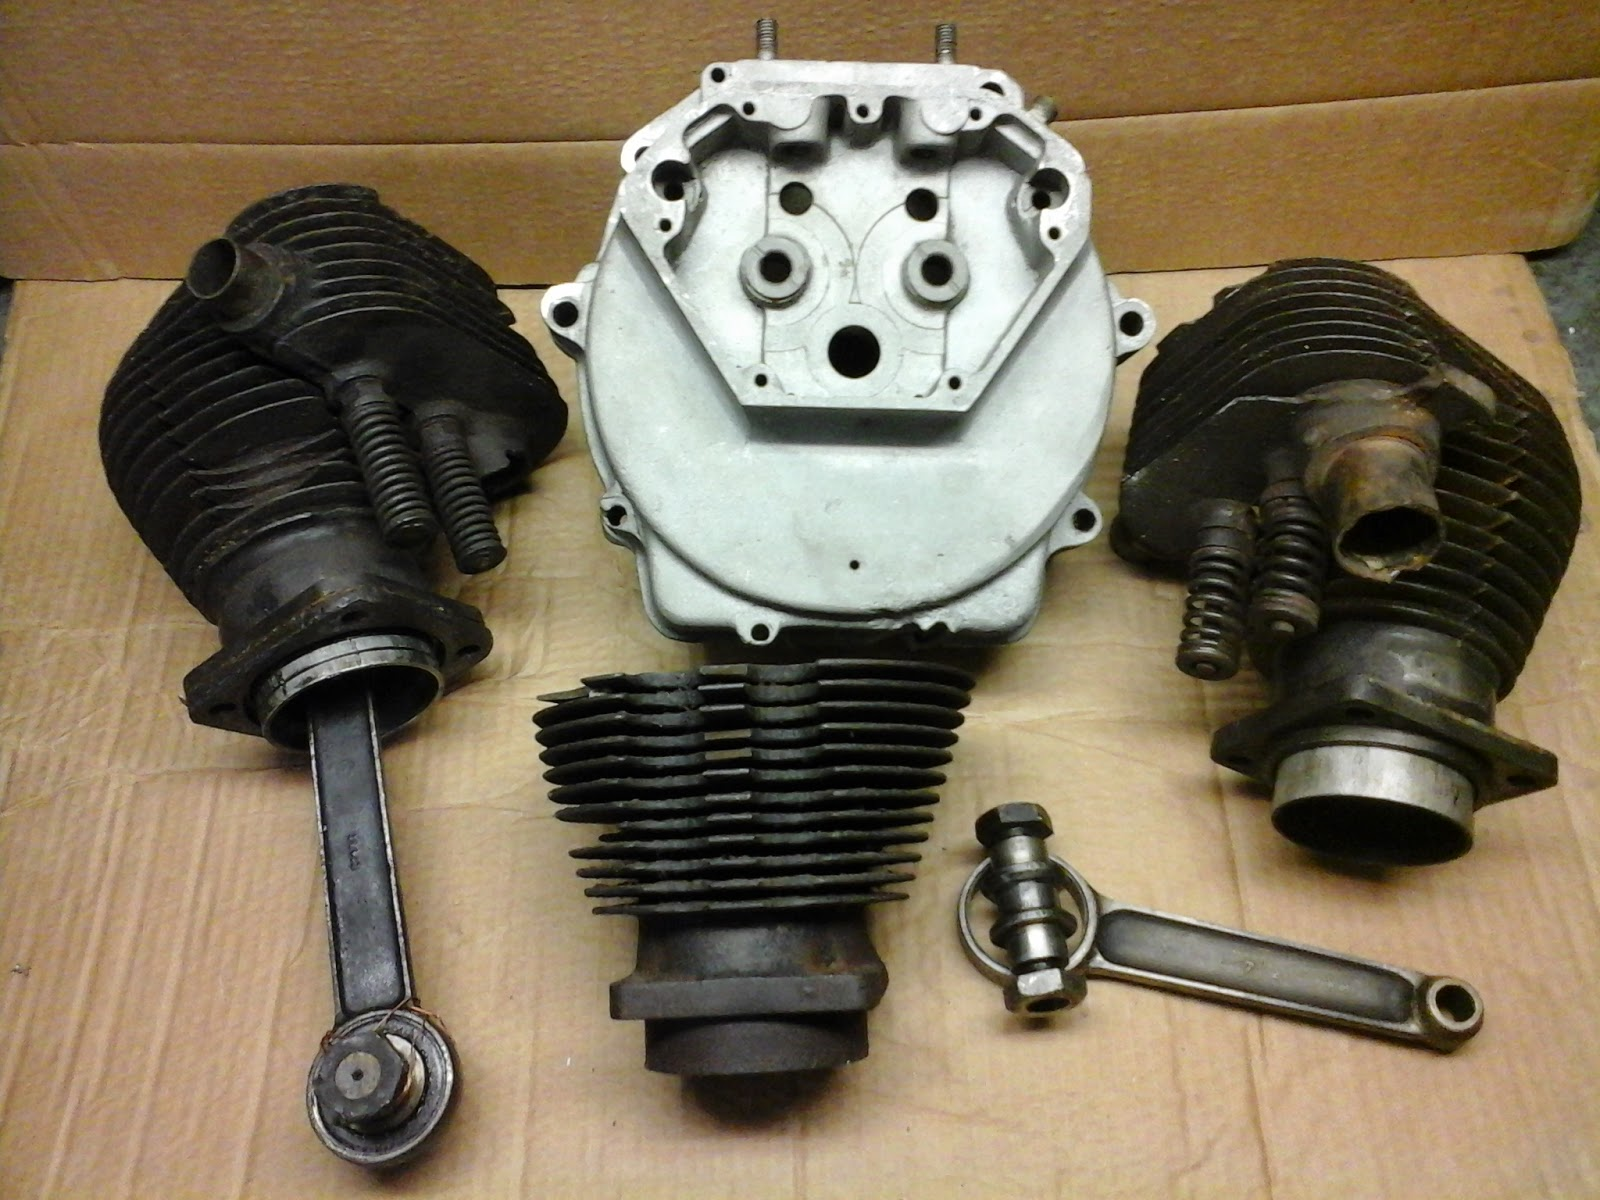 Vintage Norton Motorcycles: 1920s Norton engine parts - SOLD